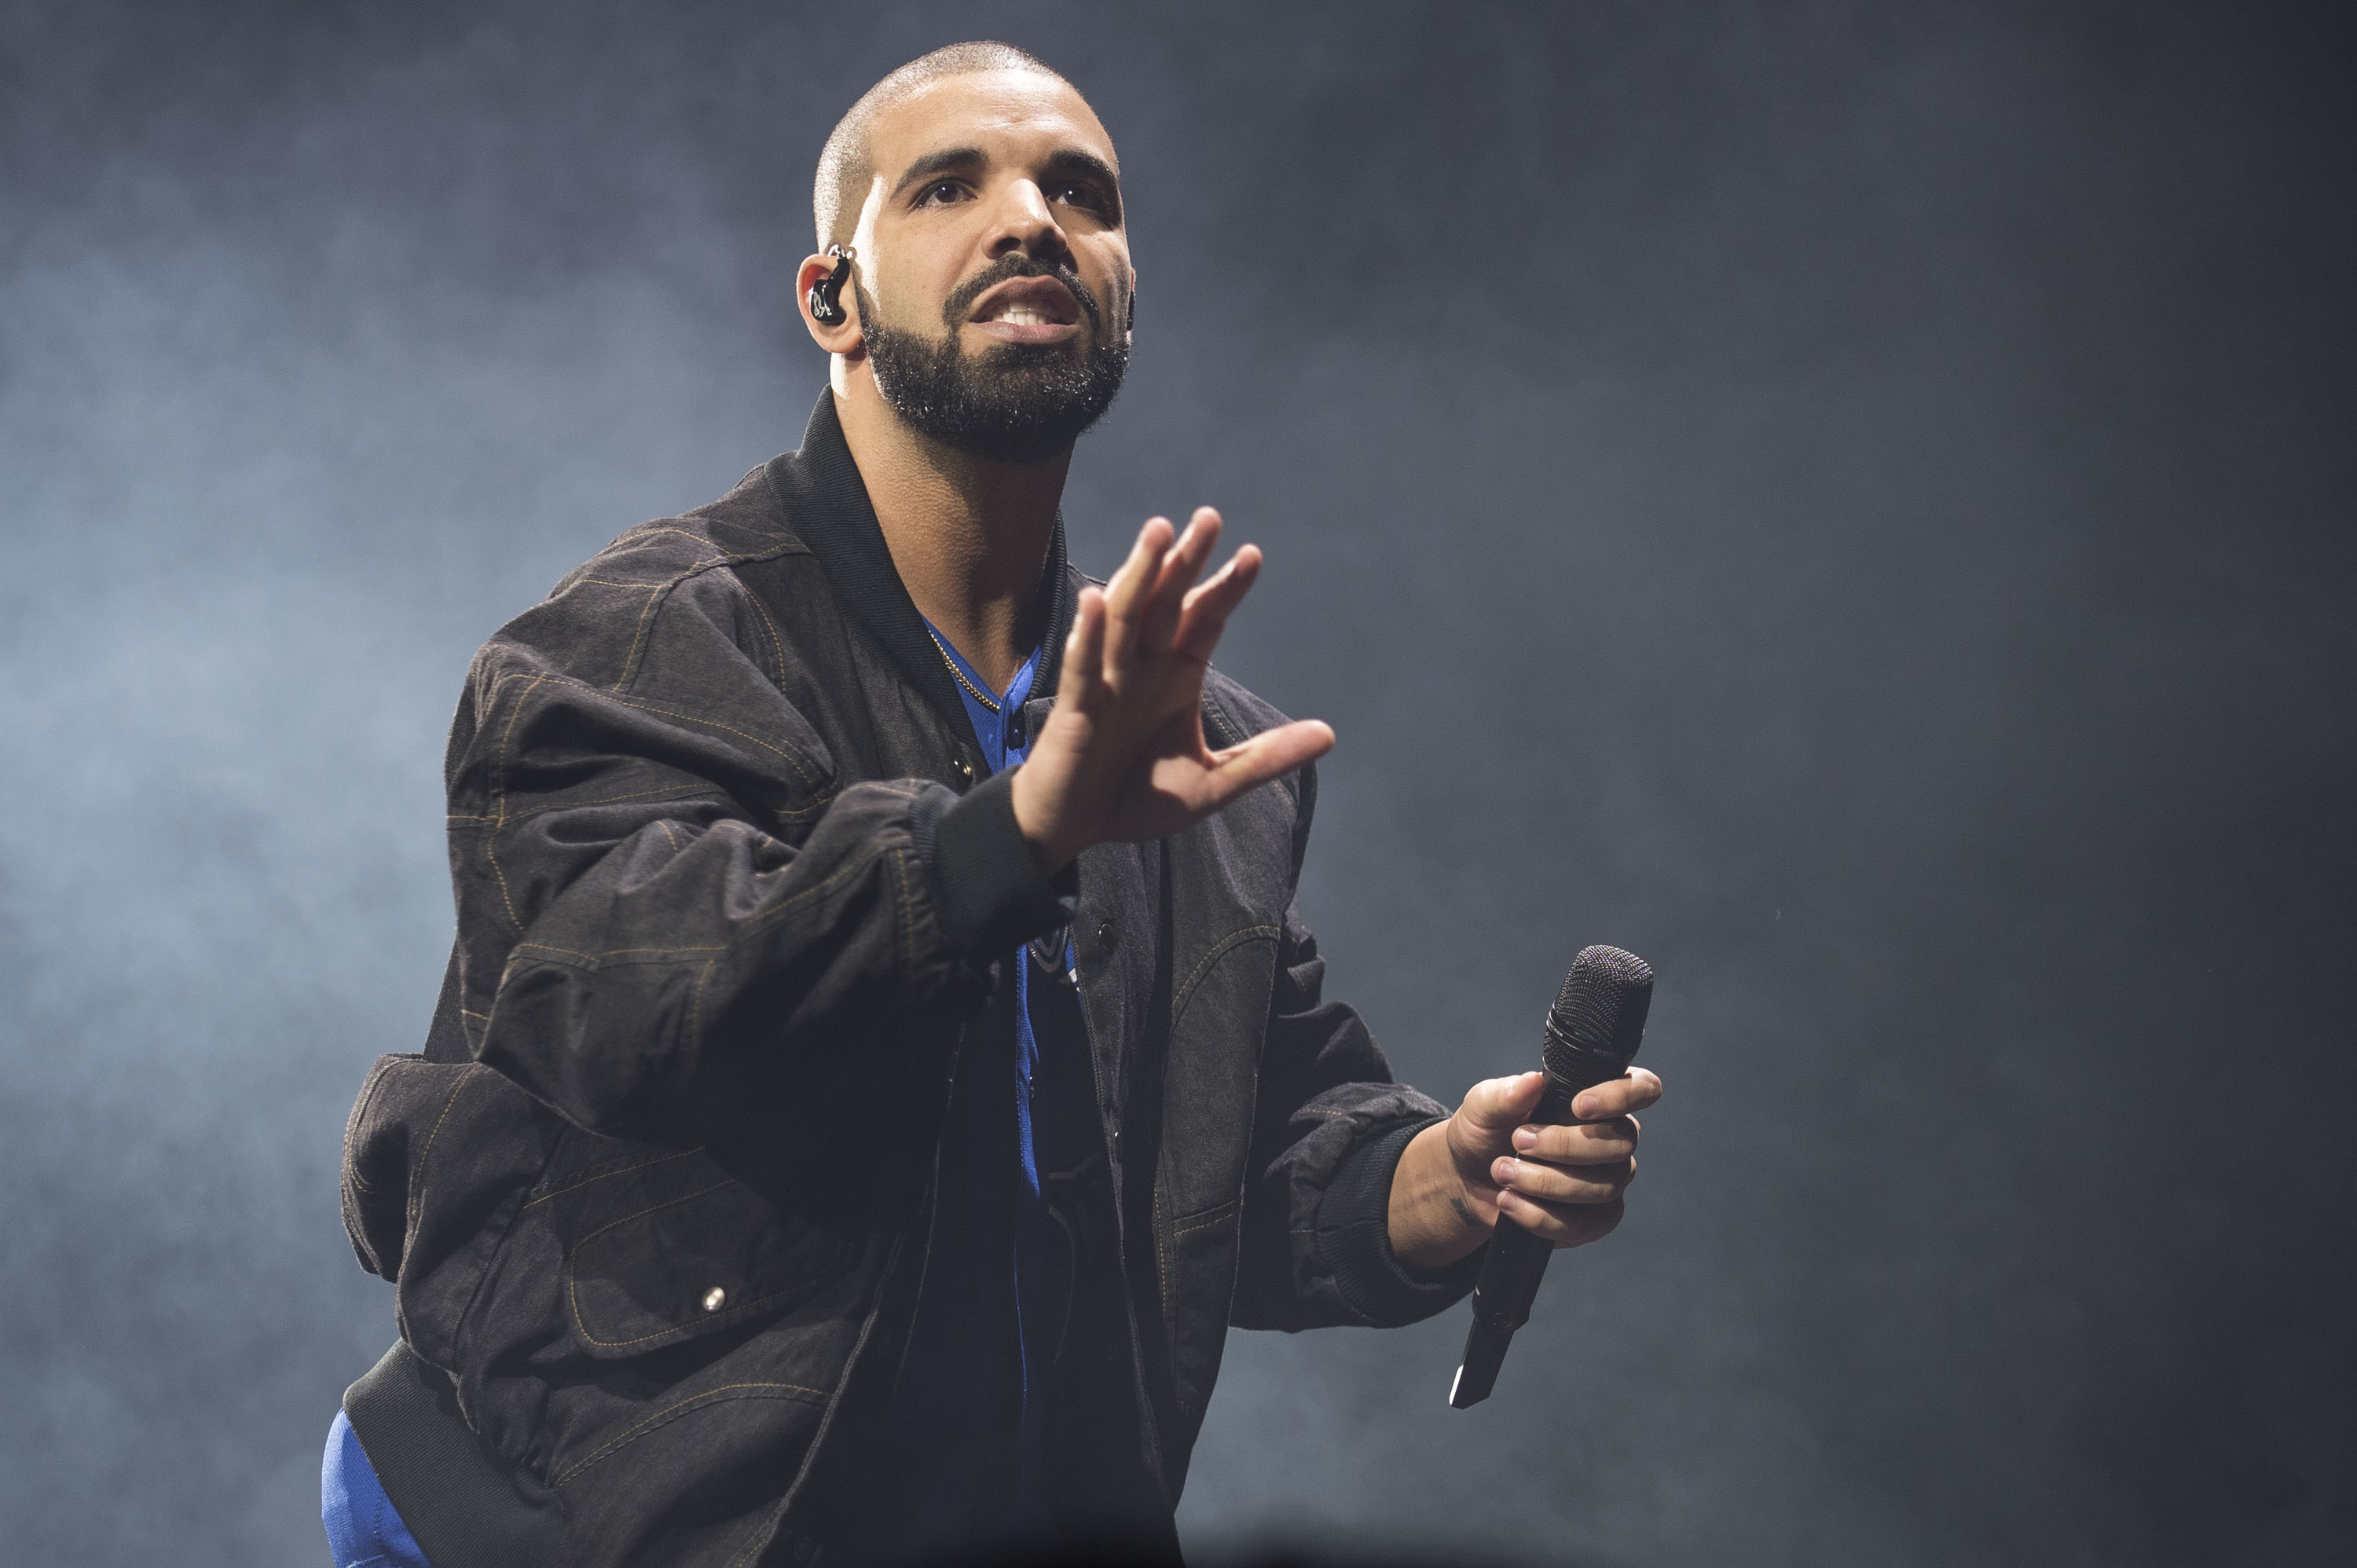 FILE - In this Oct. 8, 2016 file photo, Drake performs onstage in Toronto. Authorities say an intruder was arrested at Drake's Southern California house, but the woman apparently did nothing but drink the rapper's water and soda pop. The Los Angeles County Sheriff's Department says deputies from its Malibu/Lost Hills Station arrested 24-year-old Mesha Collins Monday, April 17, 2017, inside the home of Drake, whose real name is Aubrey Graham.  (Photo by Arthur Mola/Invision/AP, File)